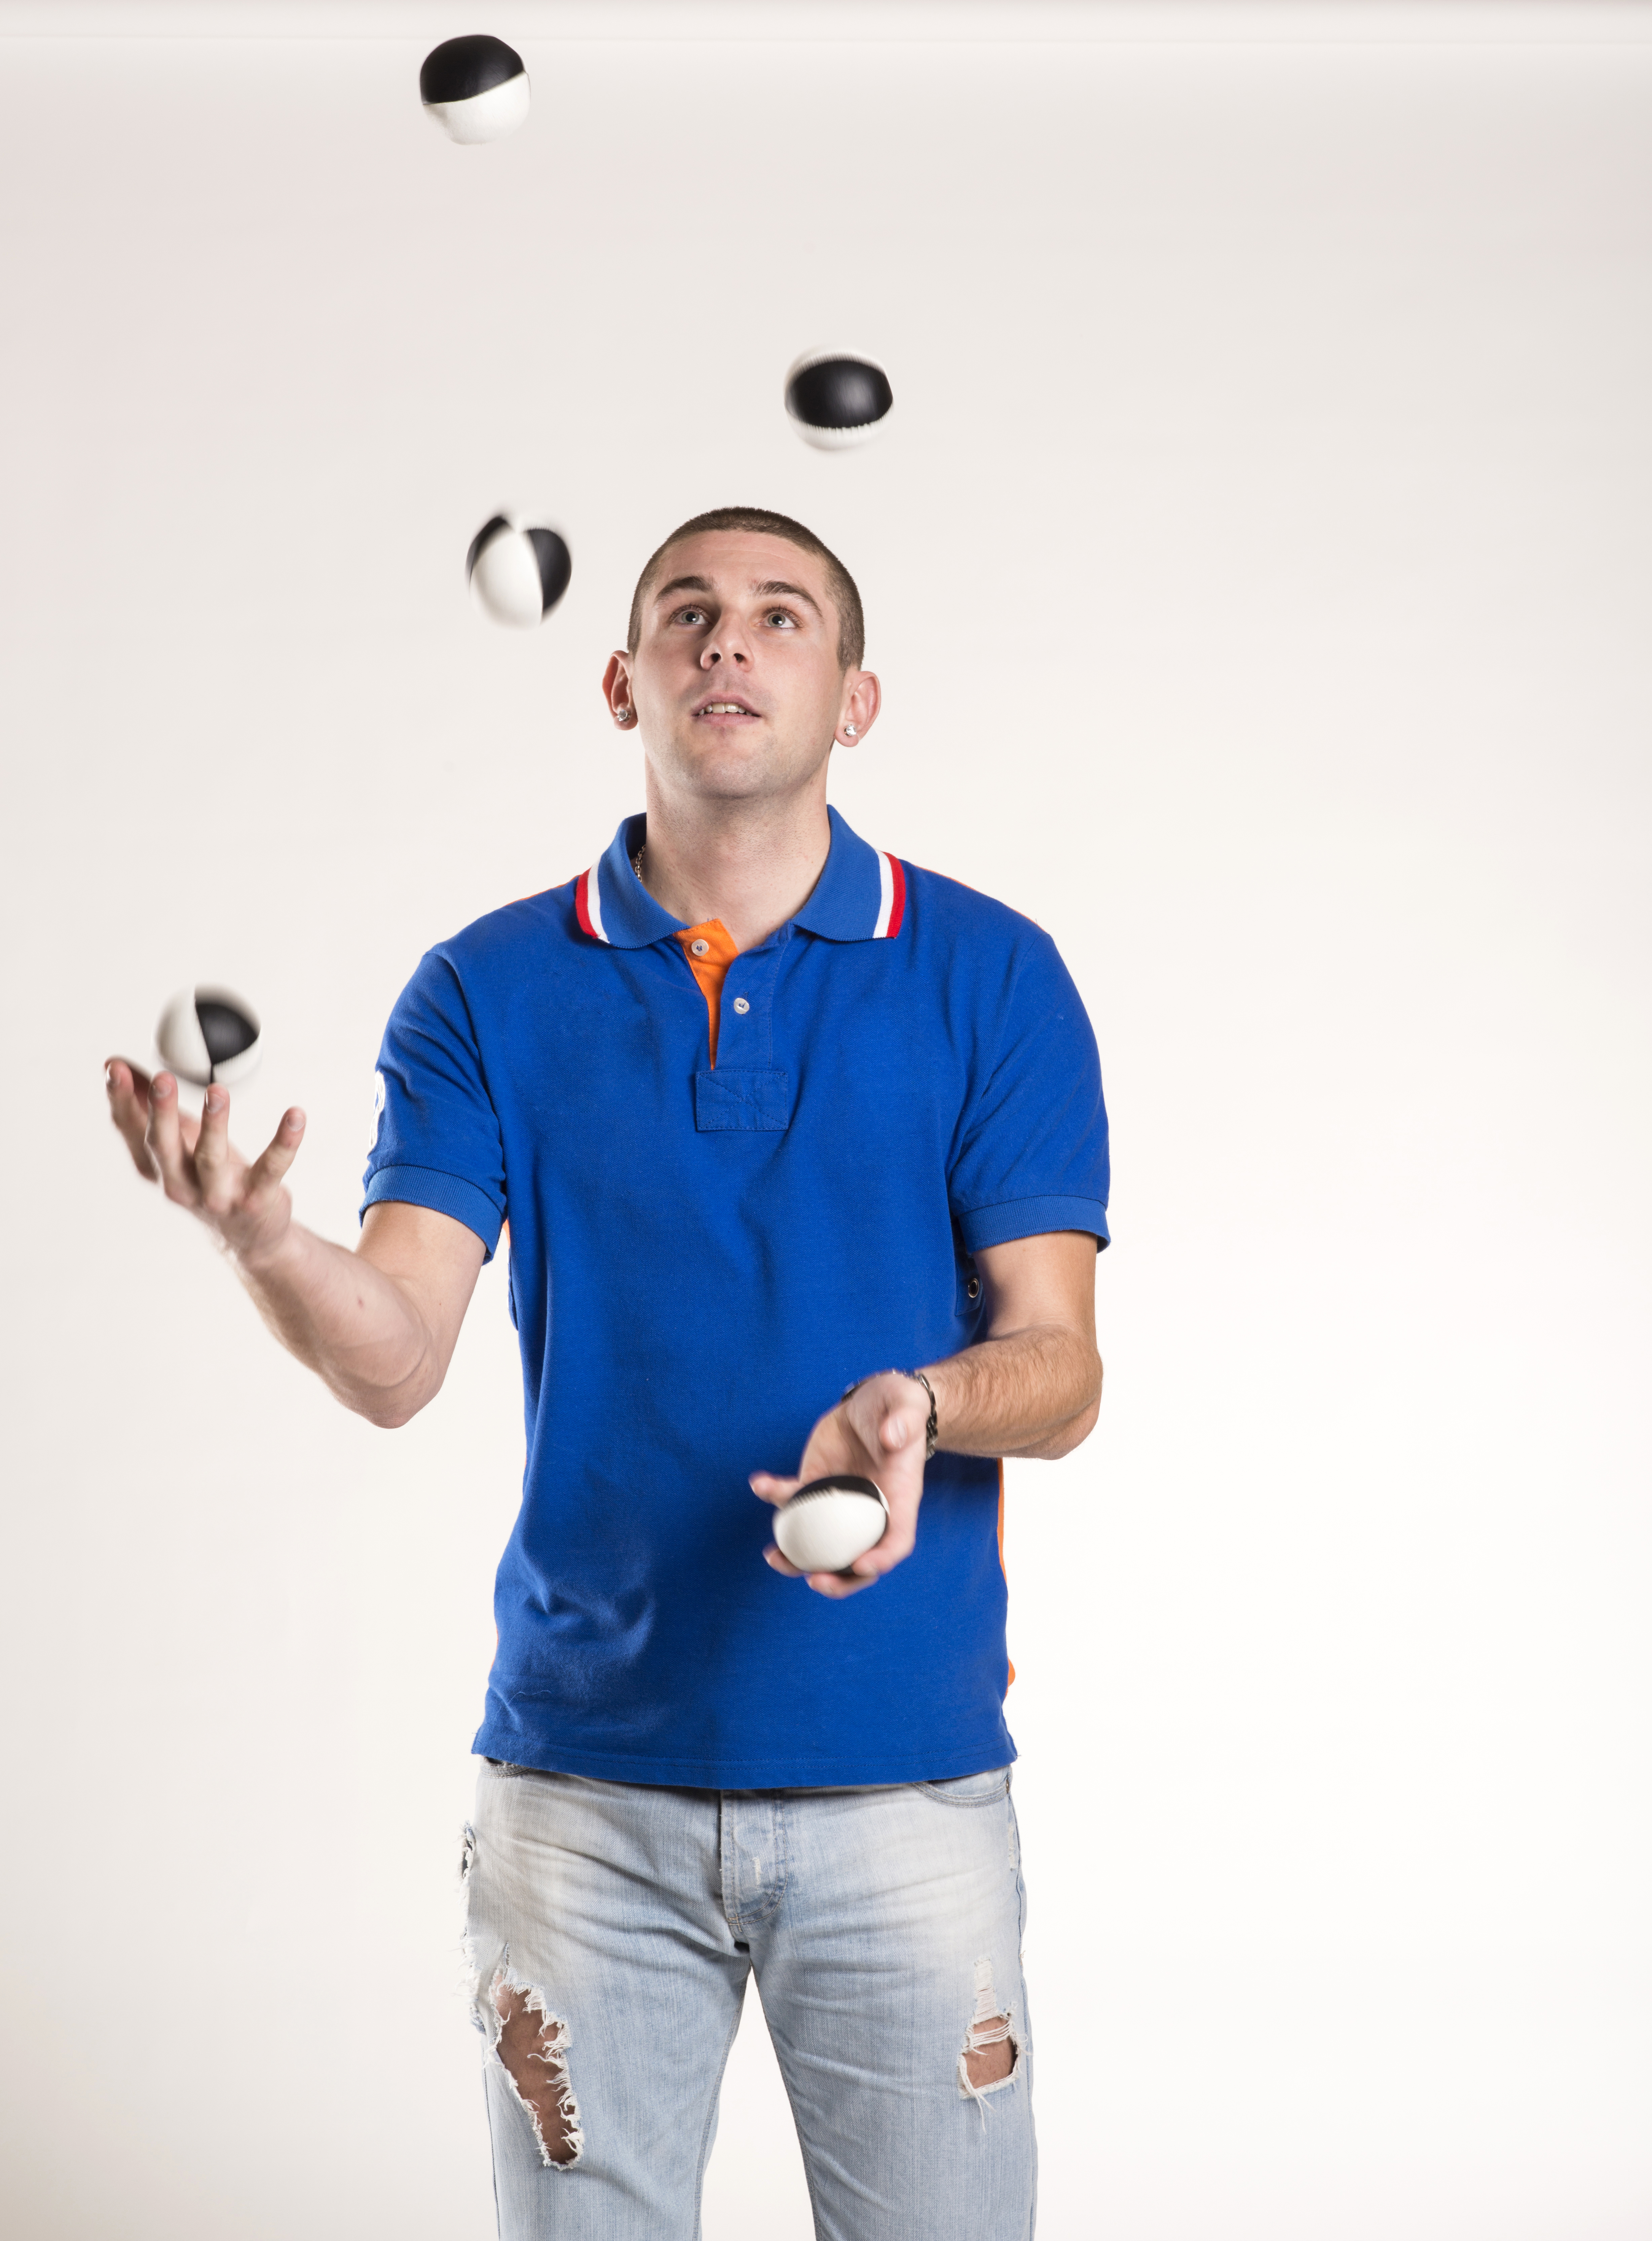 graphicstock-young-man-juggling-with-several-balls-at-once_HRcZ2H95bW.jpg